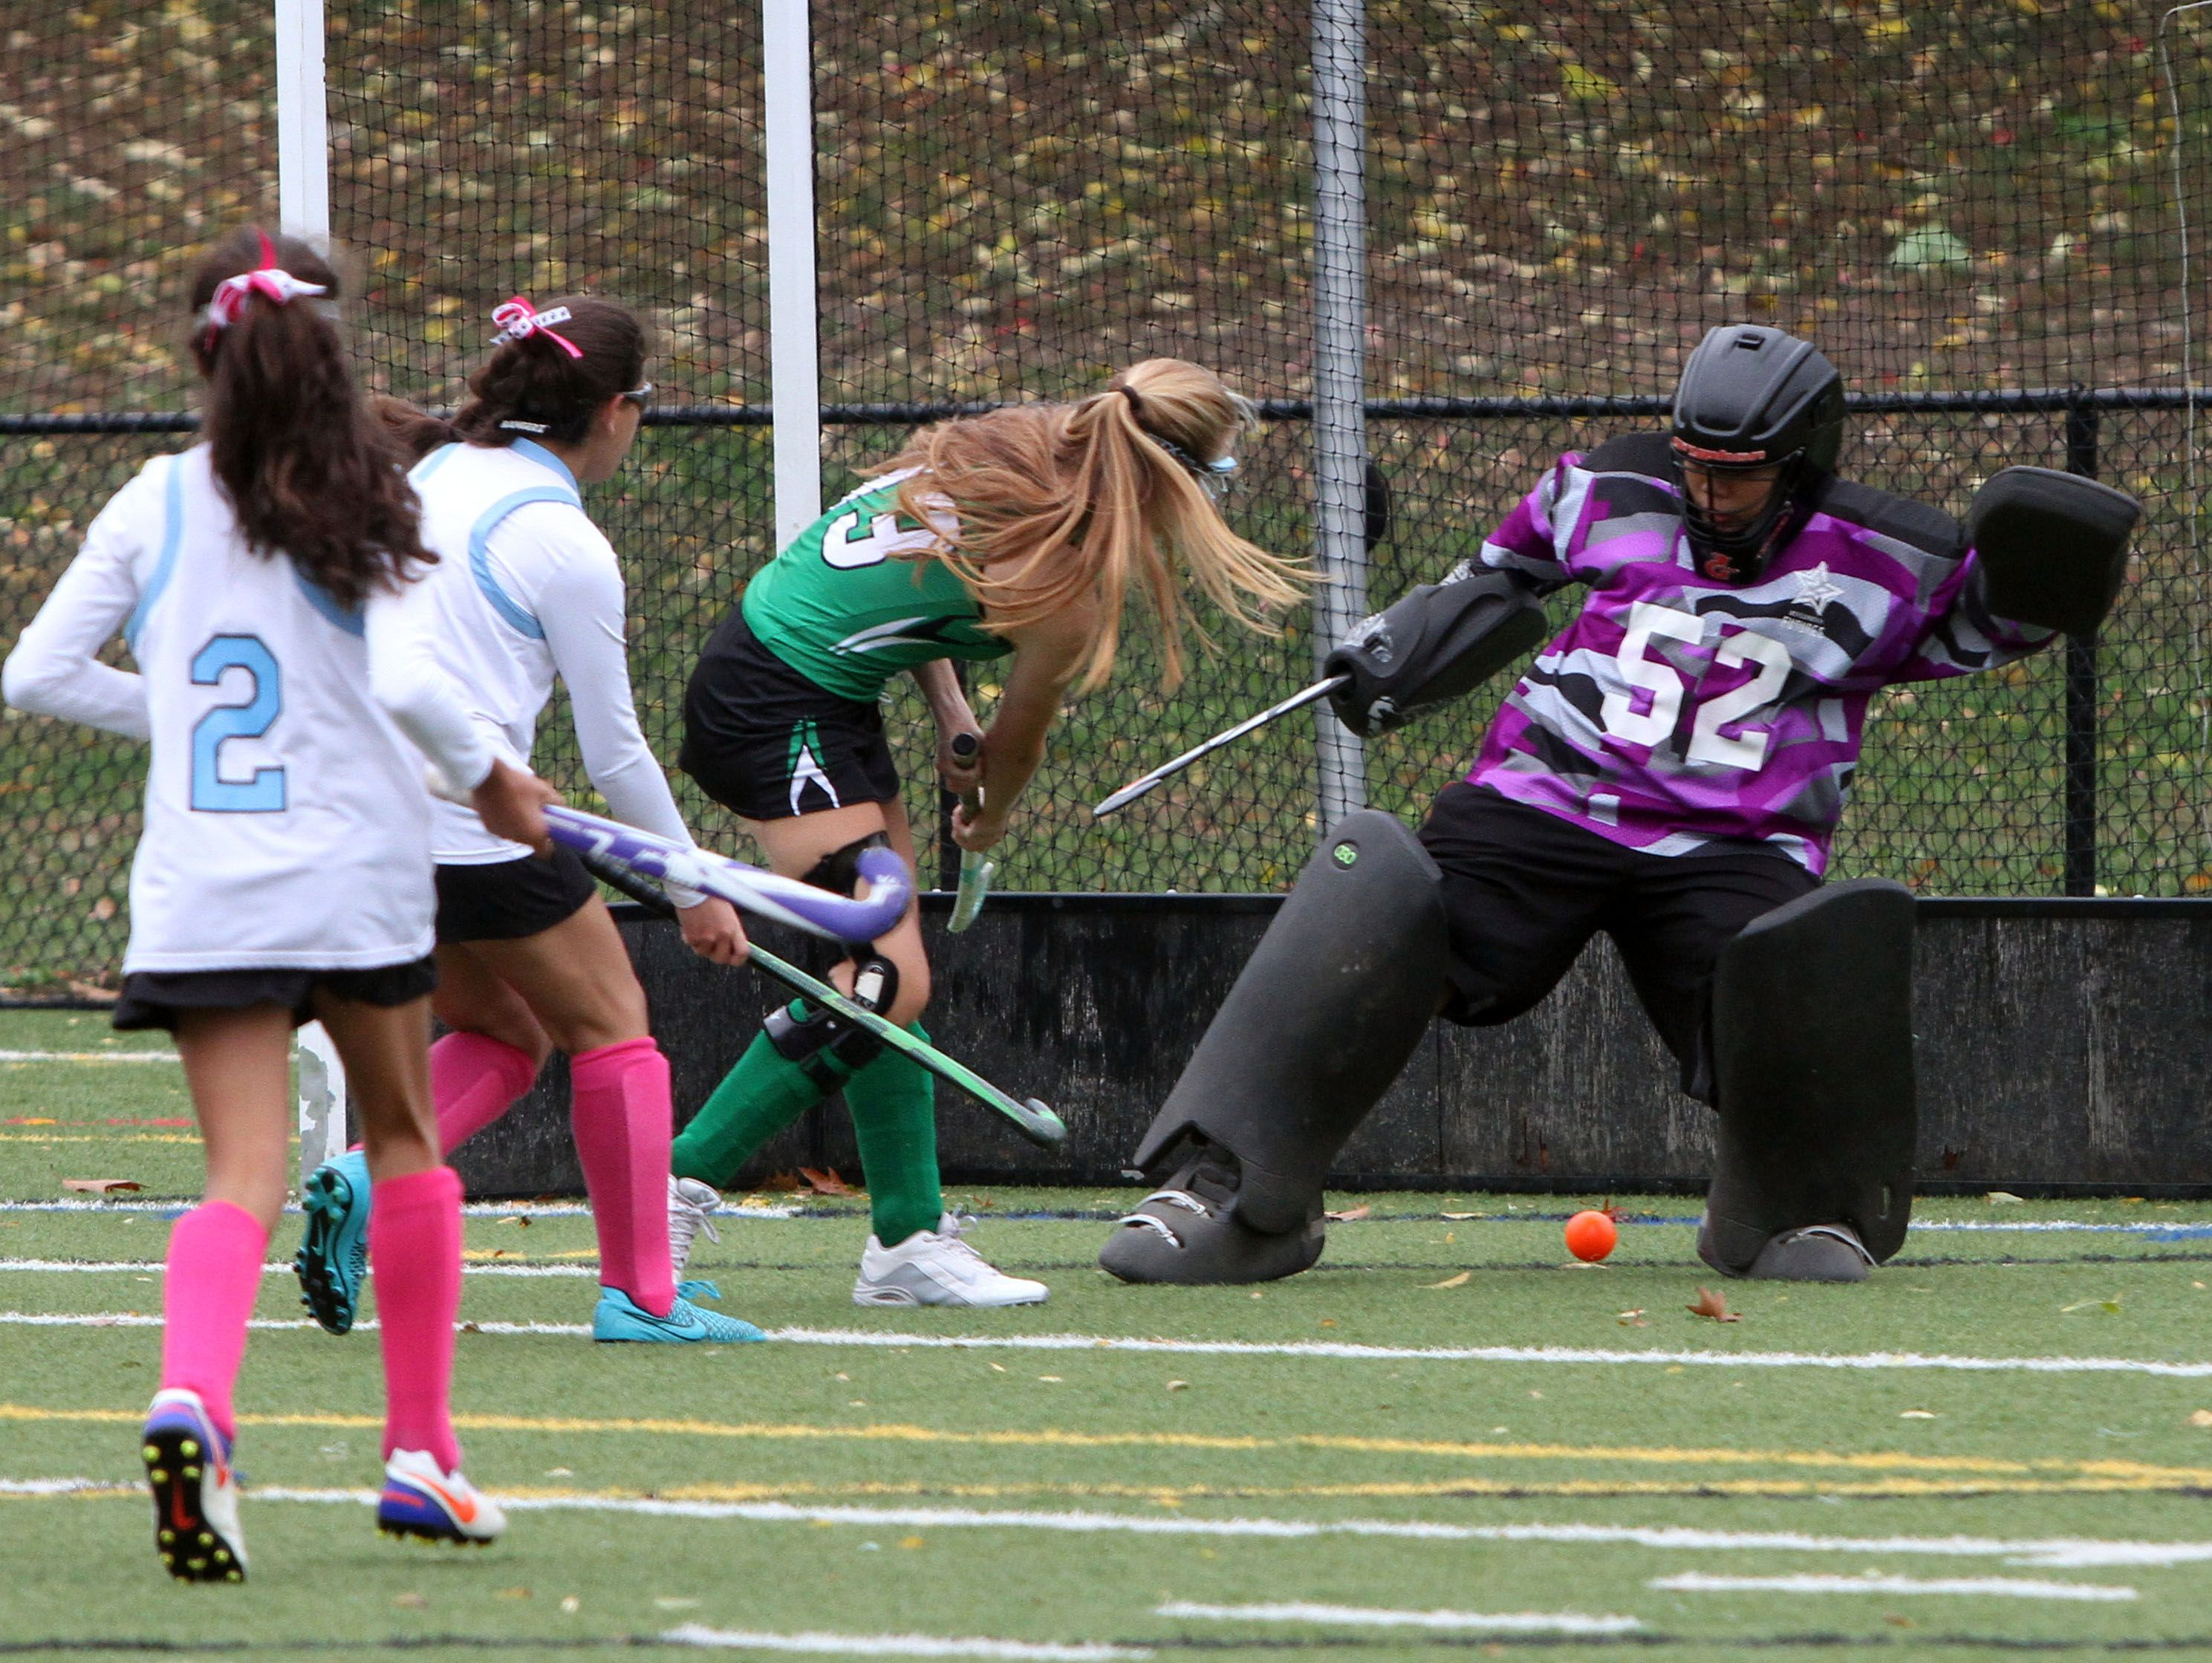 Rye Neck goalie Christina Shin stops a shot by Irvington's Suzanne Carroll during their field hockey game at Mamaroneck High School on Saturday.